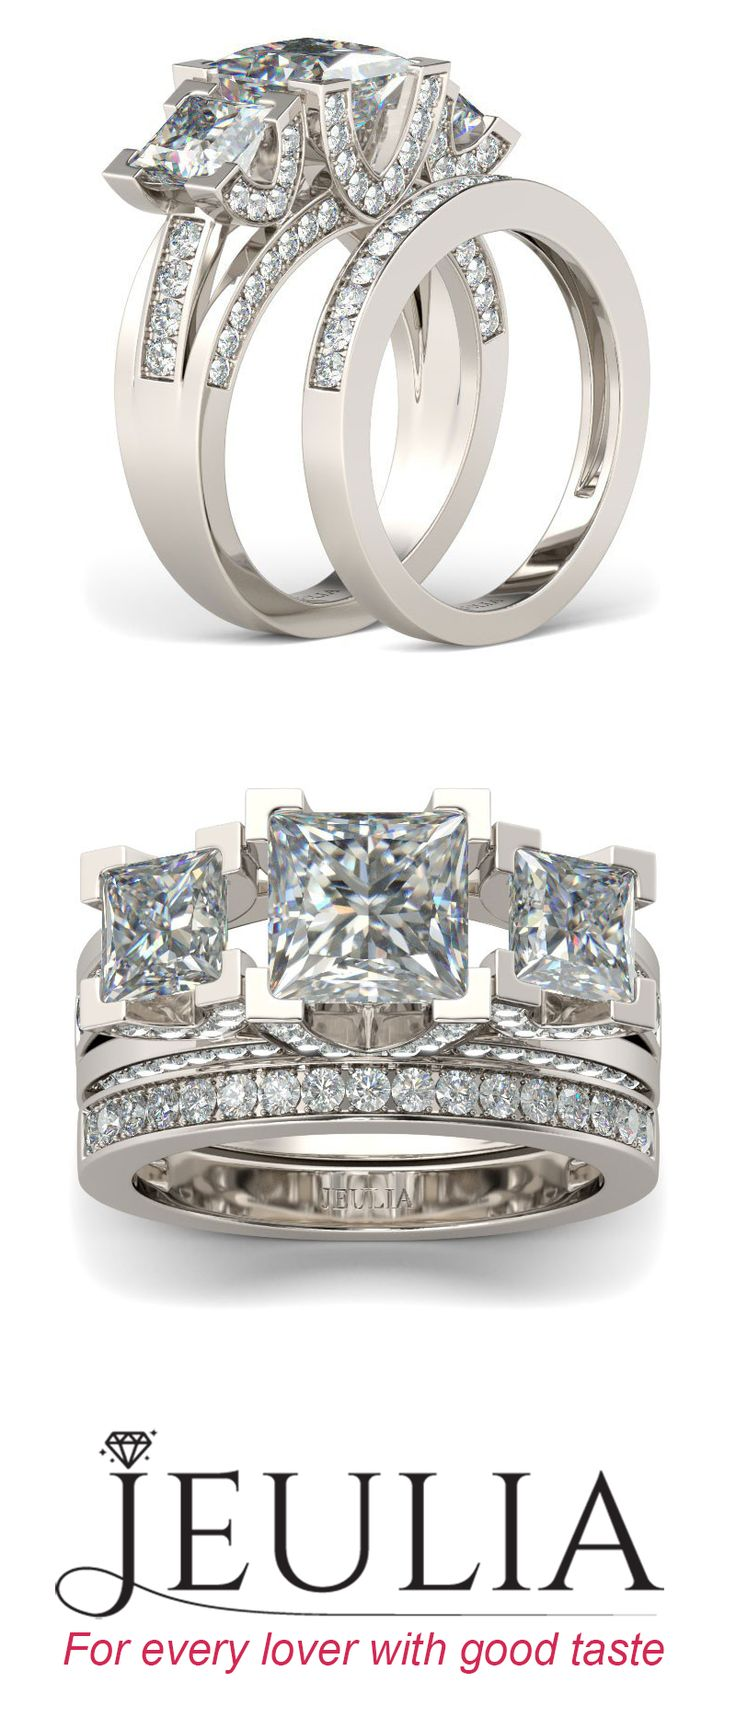 Show Your Neverending Love With A Ring Jeulia Offers High Quality Jewelry  At